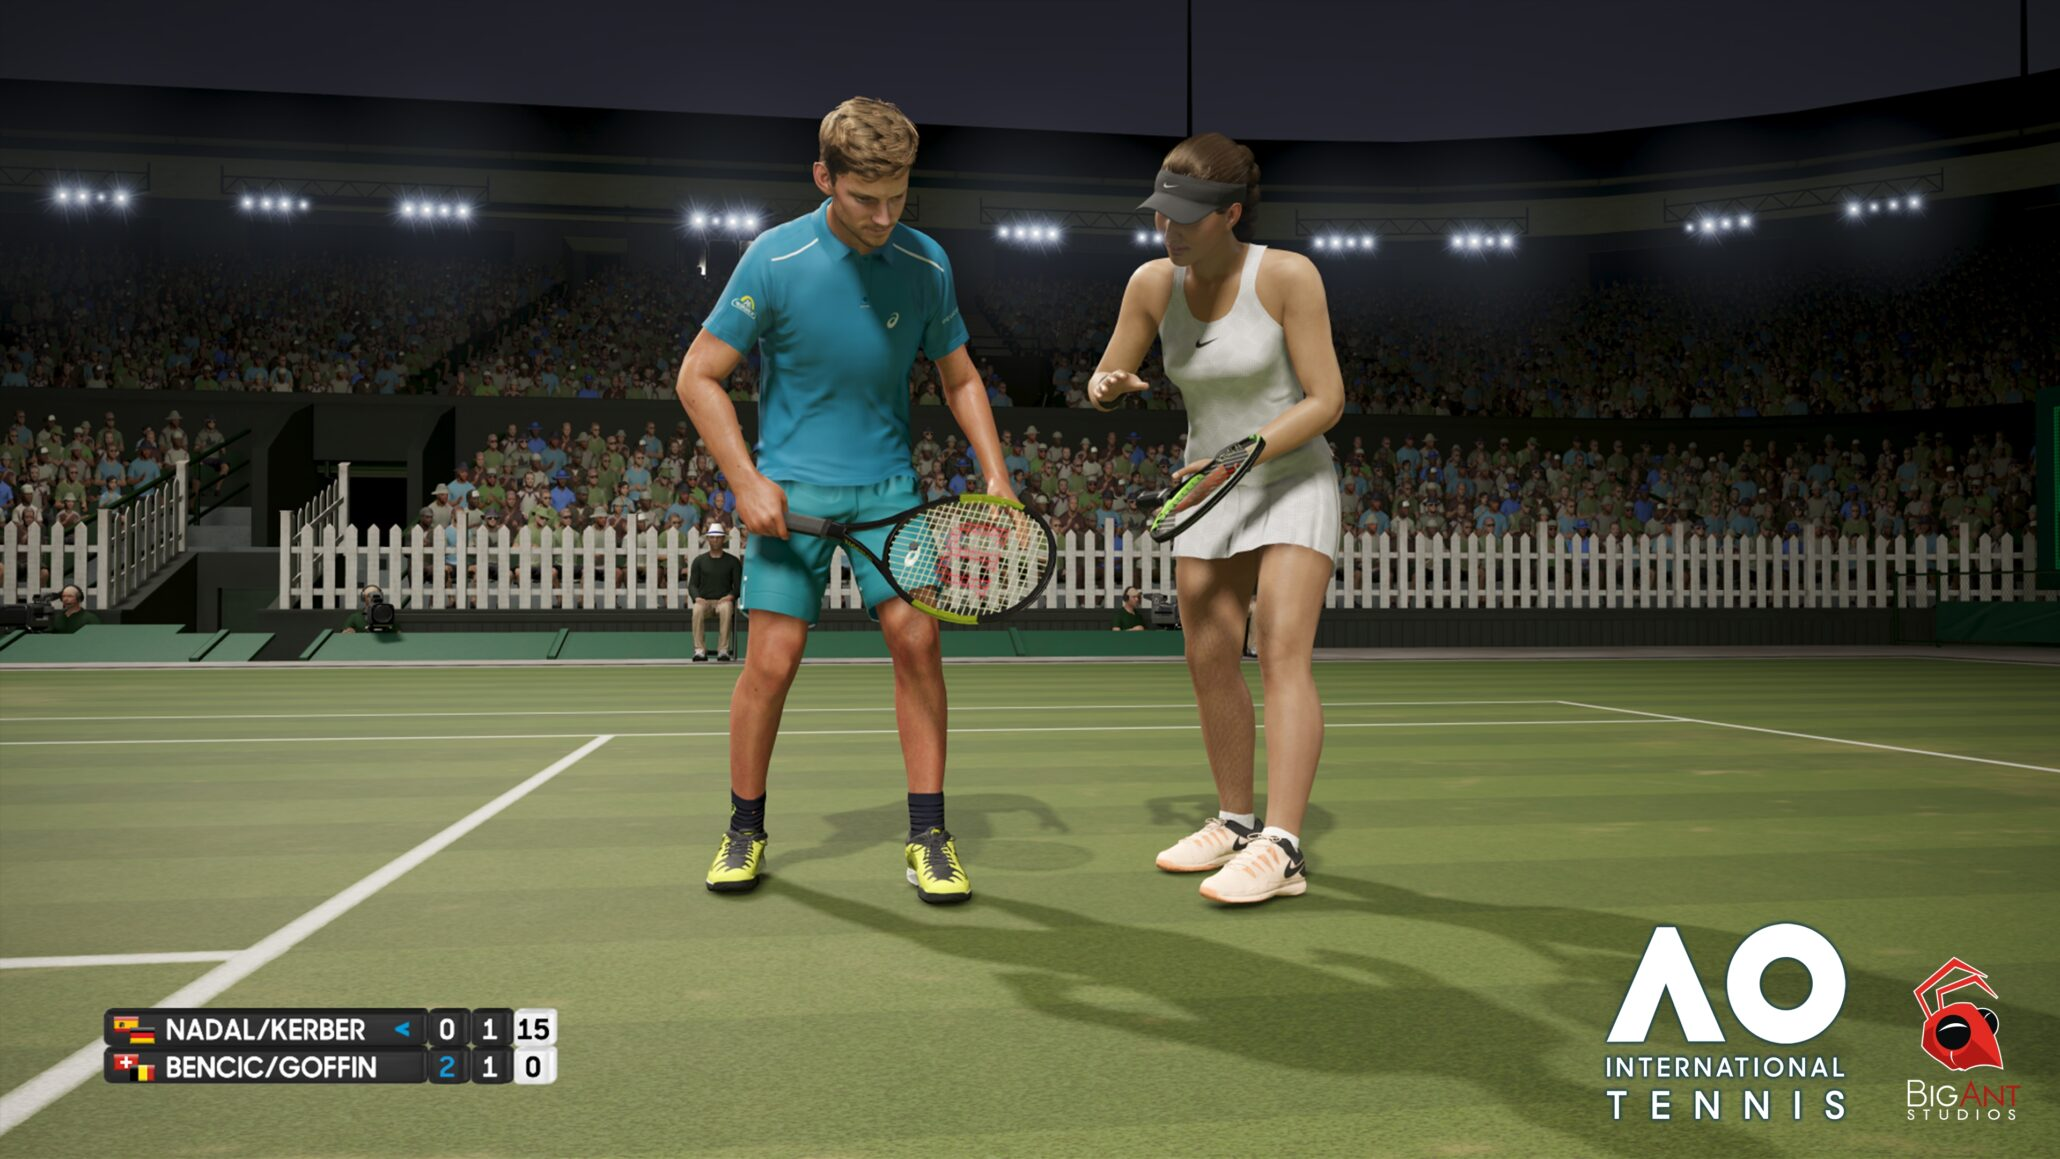 AO International Tennis Interview - A Whole New Game